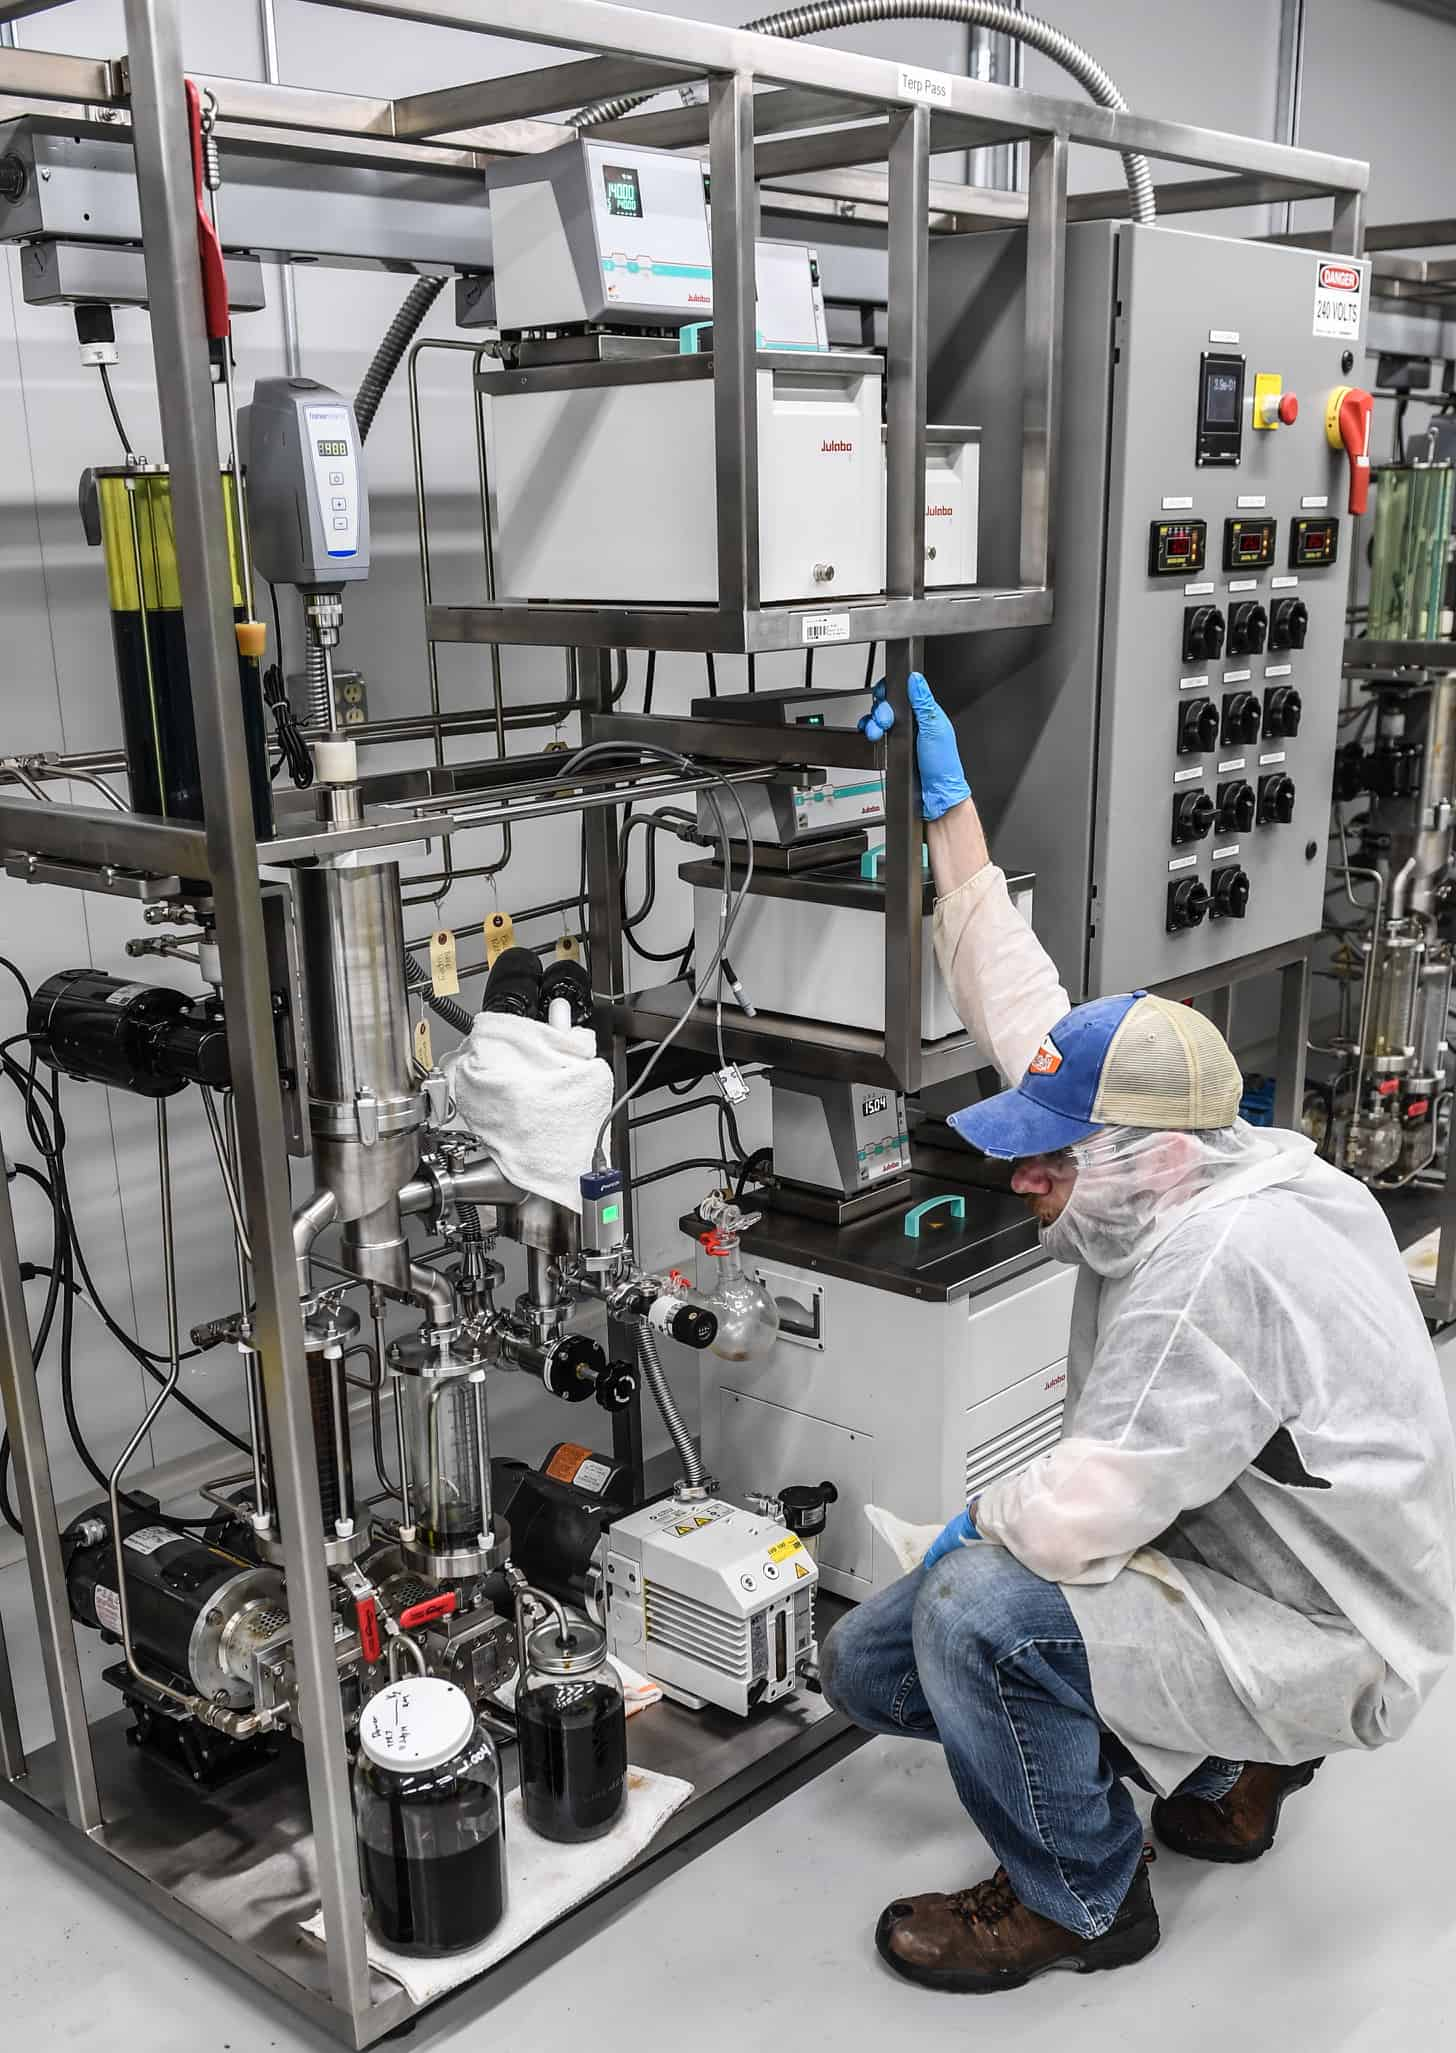 Man in PPE operating extraction equipment